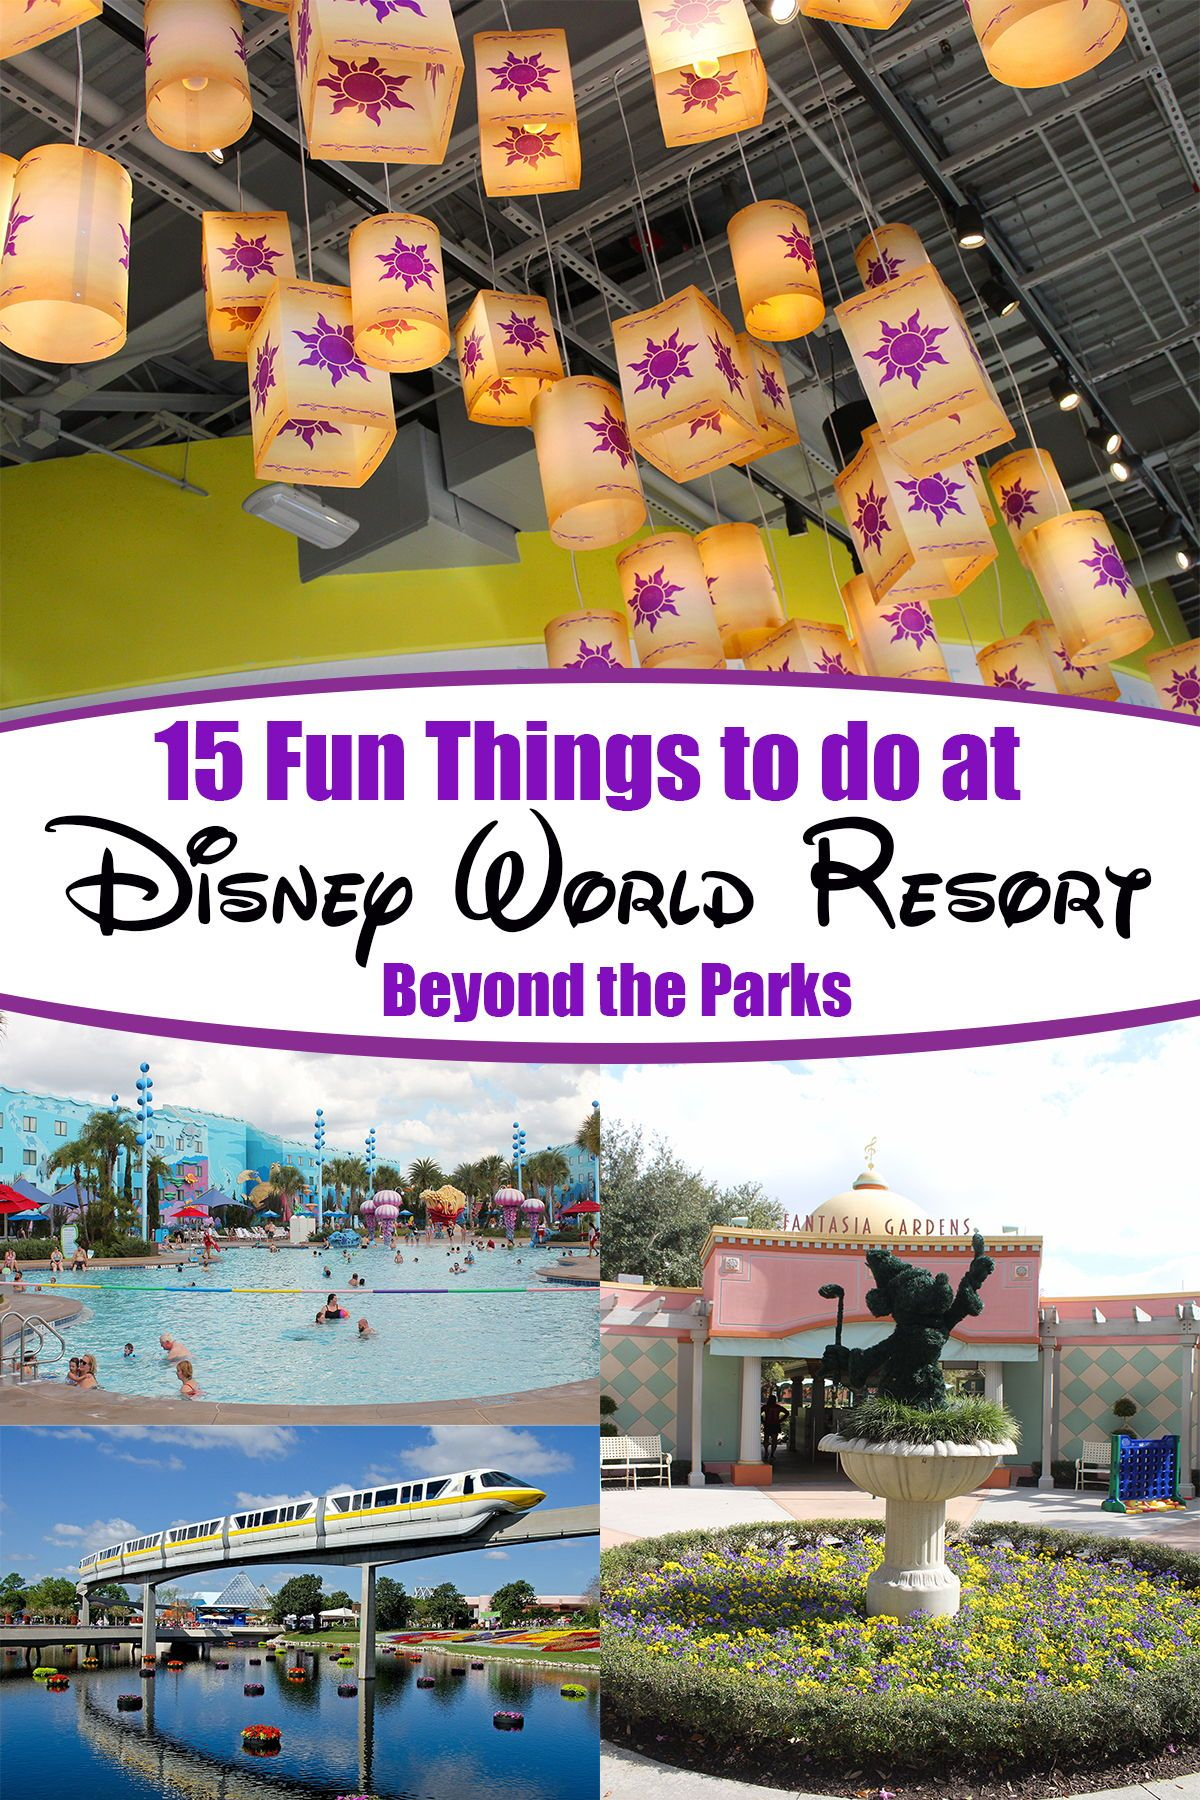 15 Fun Things to do at the Disney World Resort in Orlando Resort other than the amusement parks. Great